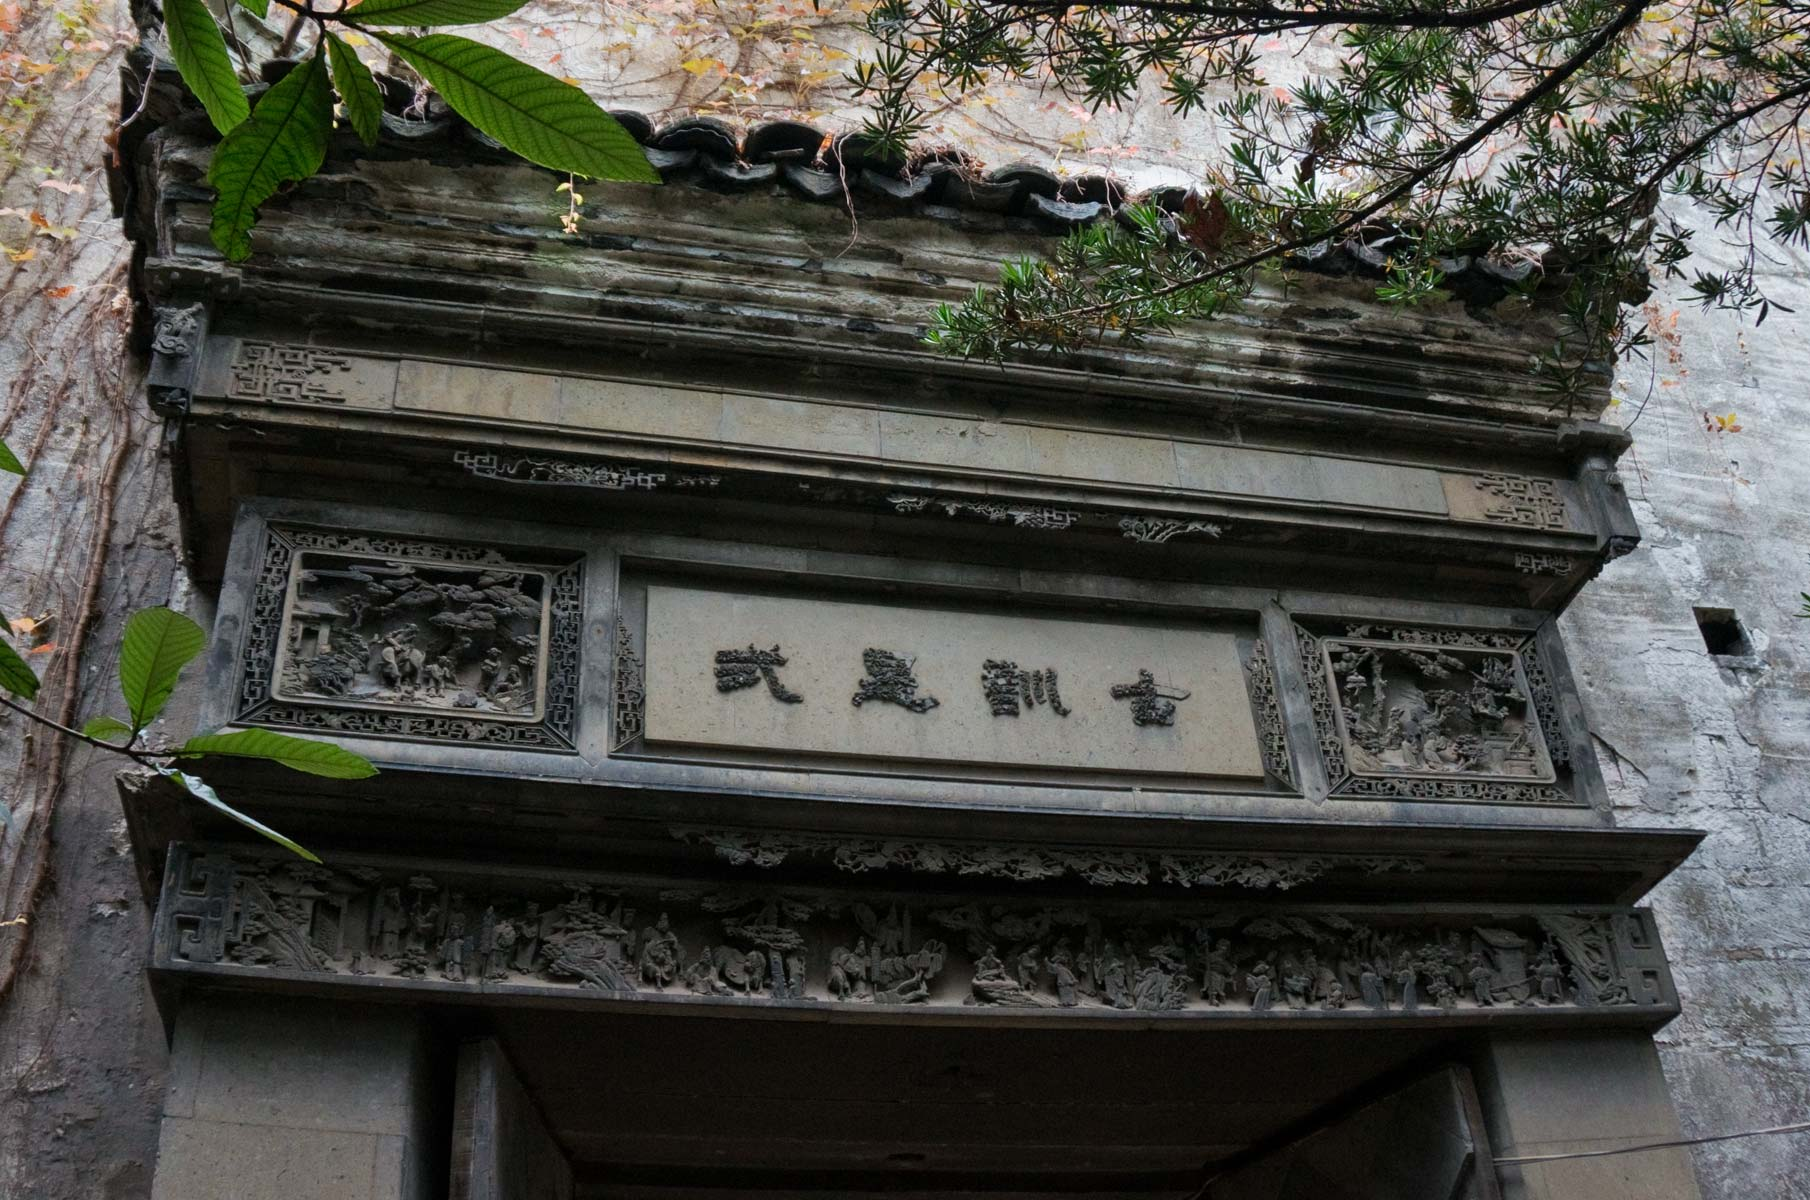 Shuyinlou 书隐楼 Anwesen in Shanghai, China